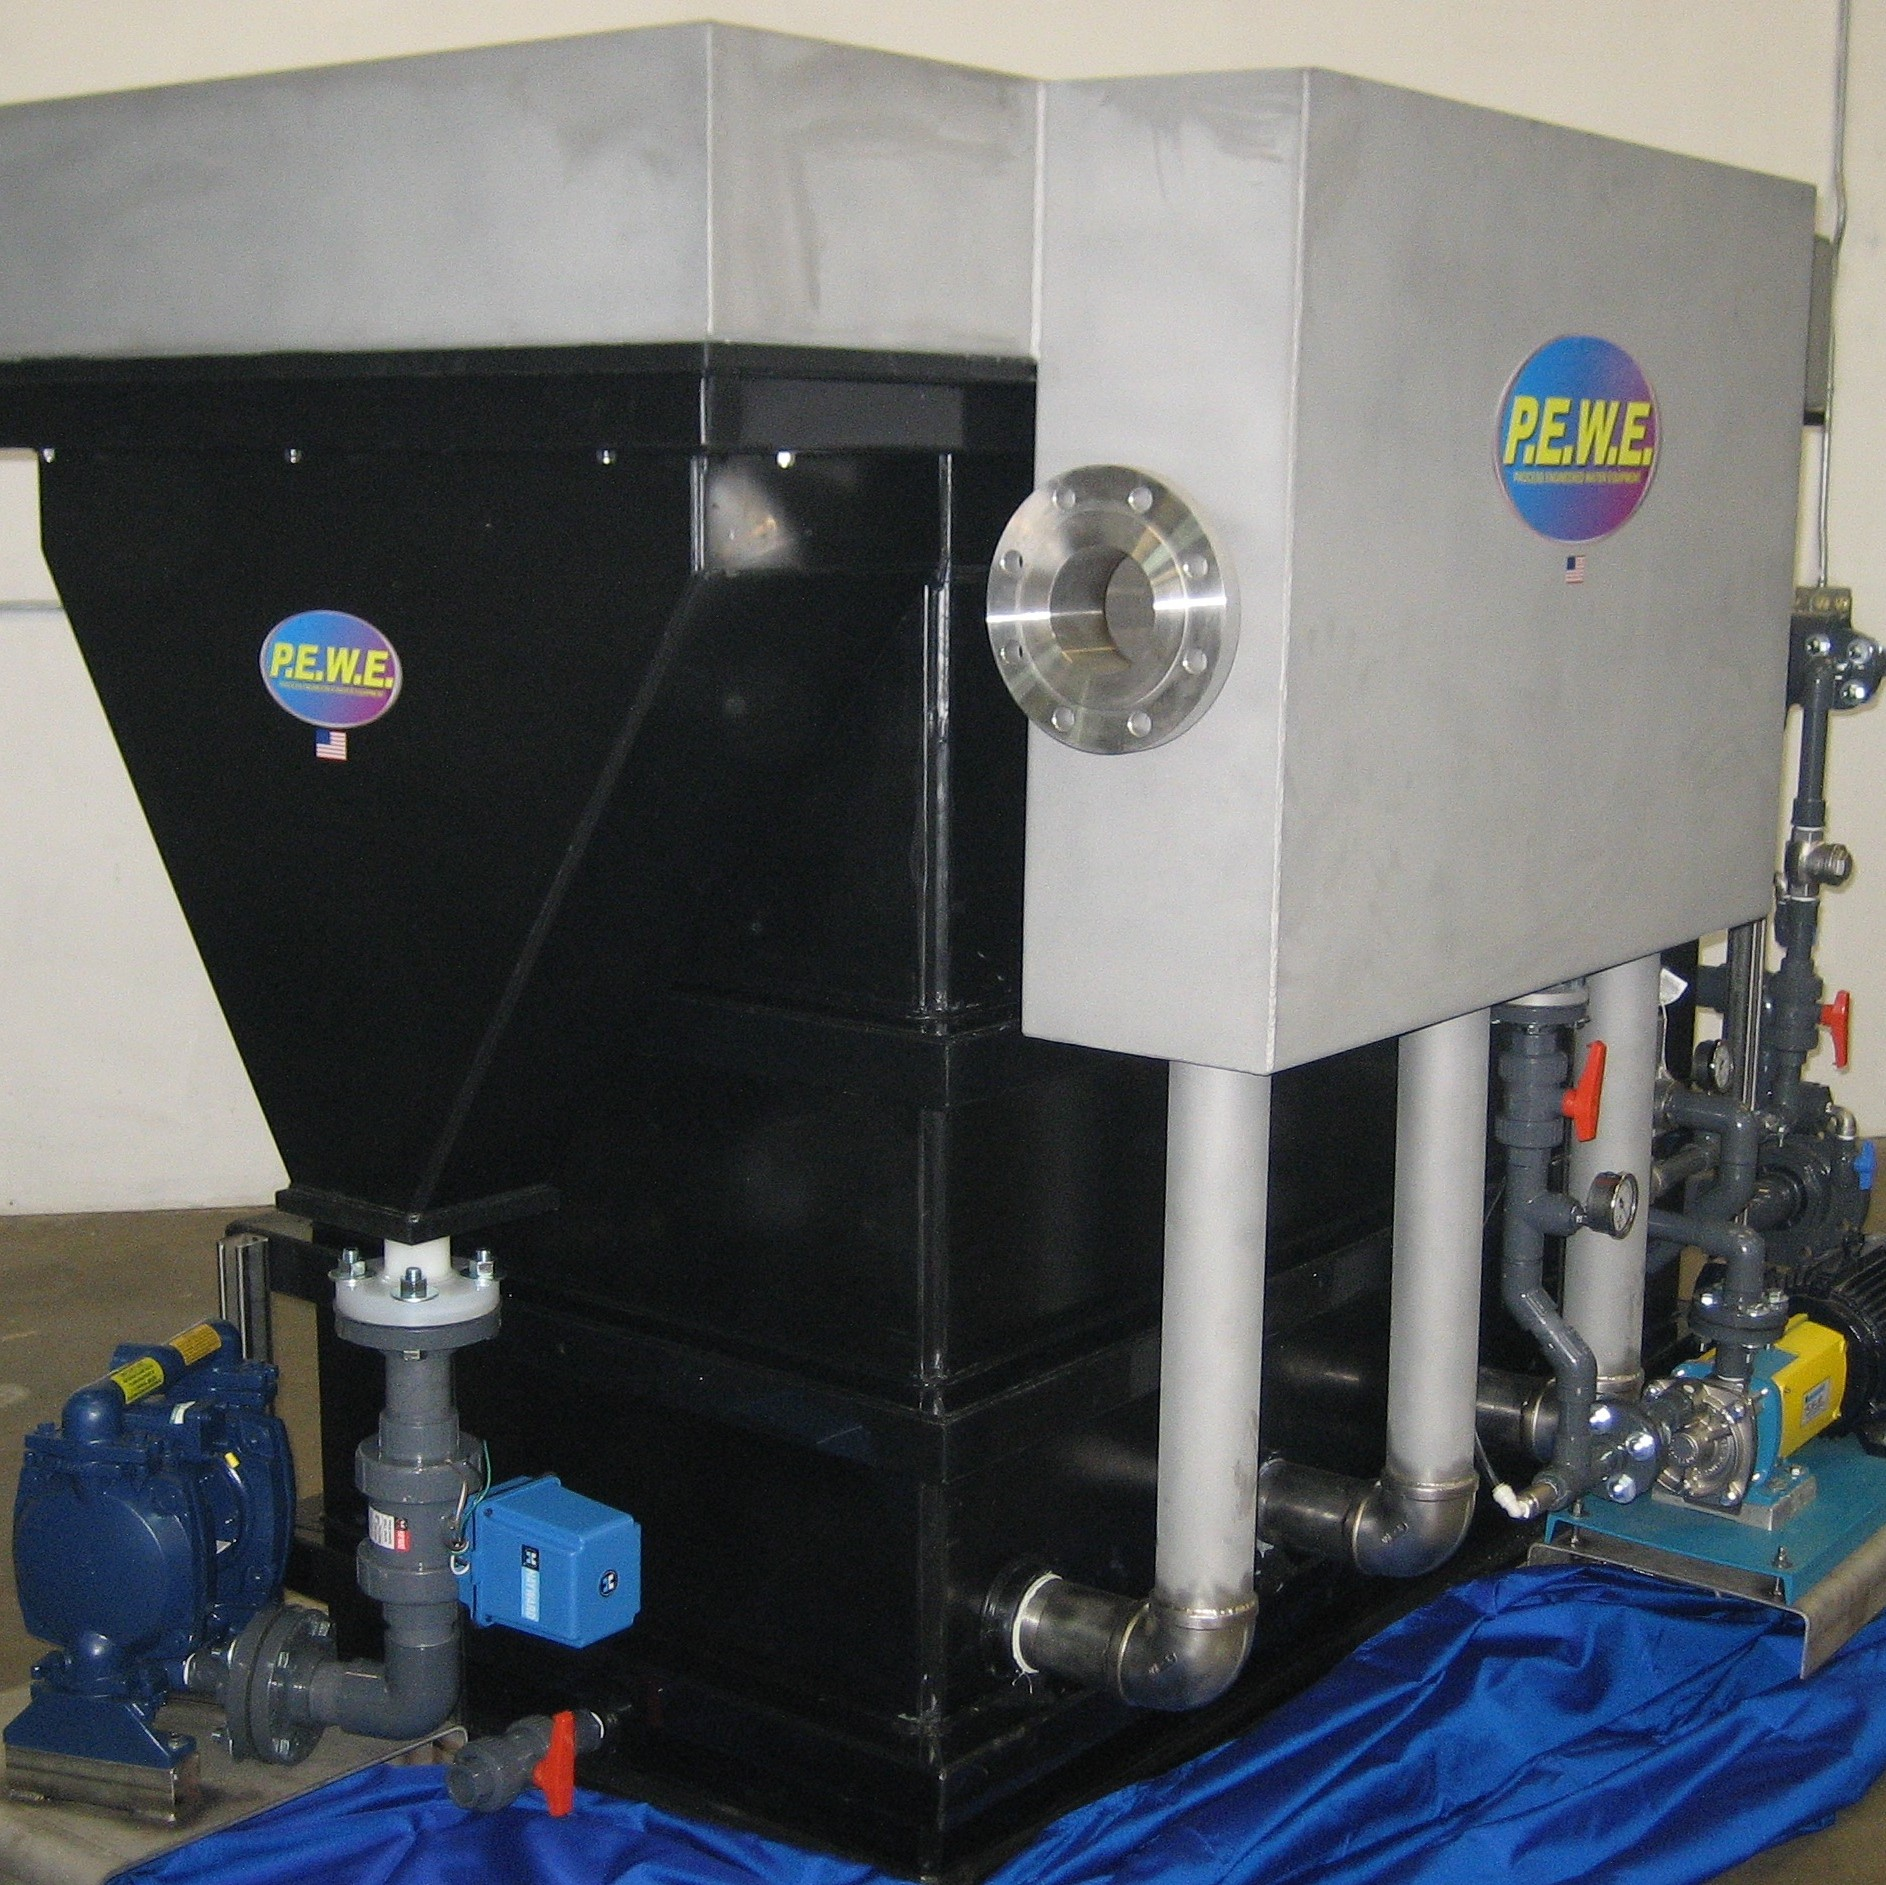 PEWE Poly-E DAF Dissolved Air Flotation